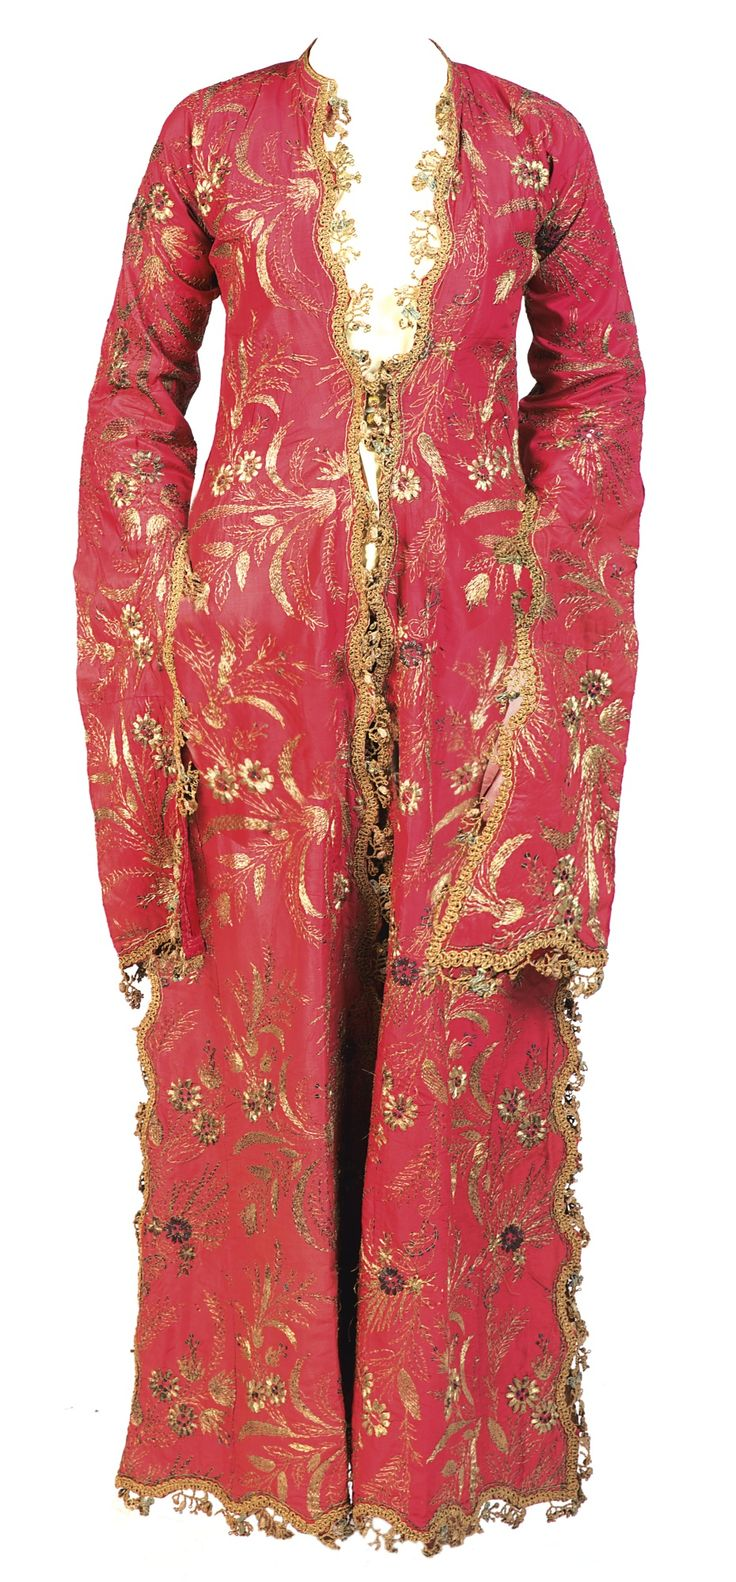 Turkey, Ottoman embroidered lady's robe (entari), the pink silk robe embroidered in gilt-metal threads and sequins with floral sprays, trimmed with an ornate gilt-metal braid, 18th century